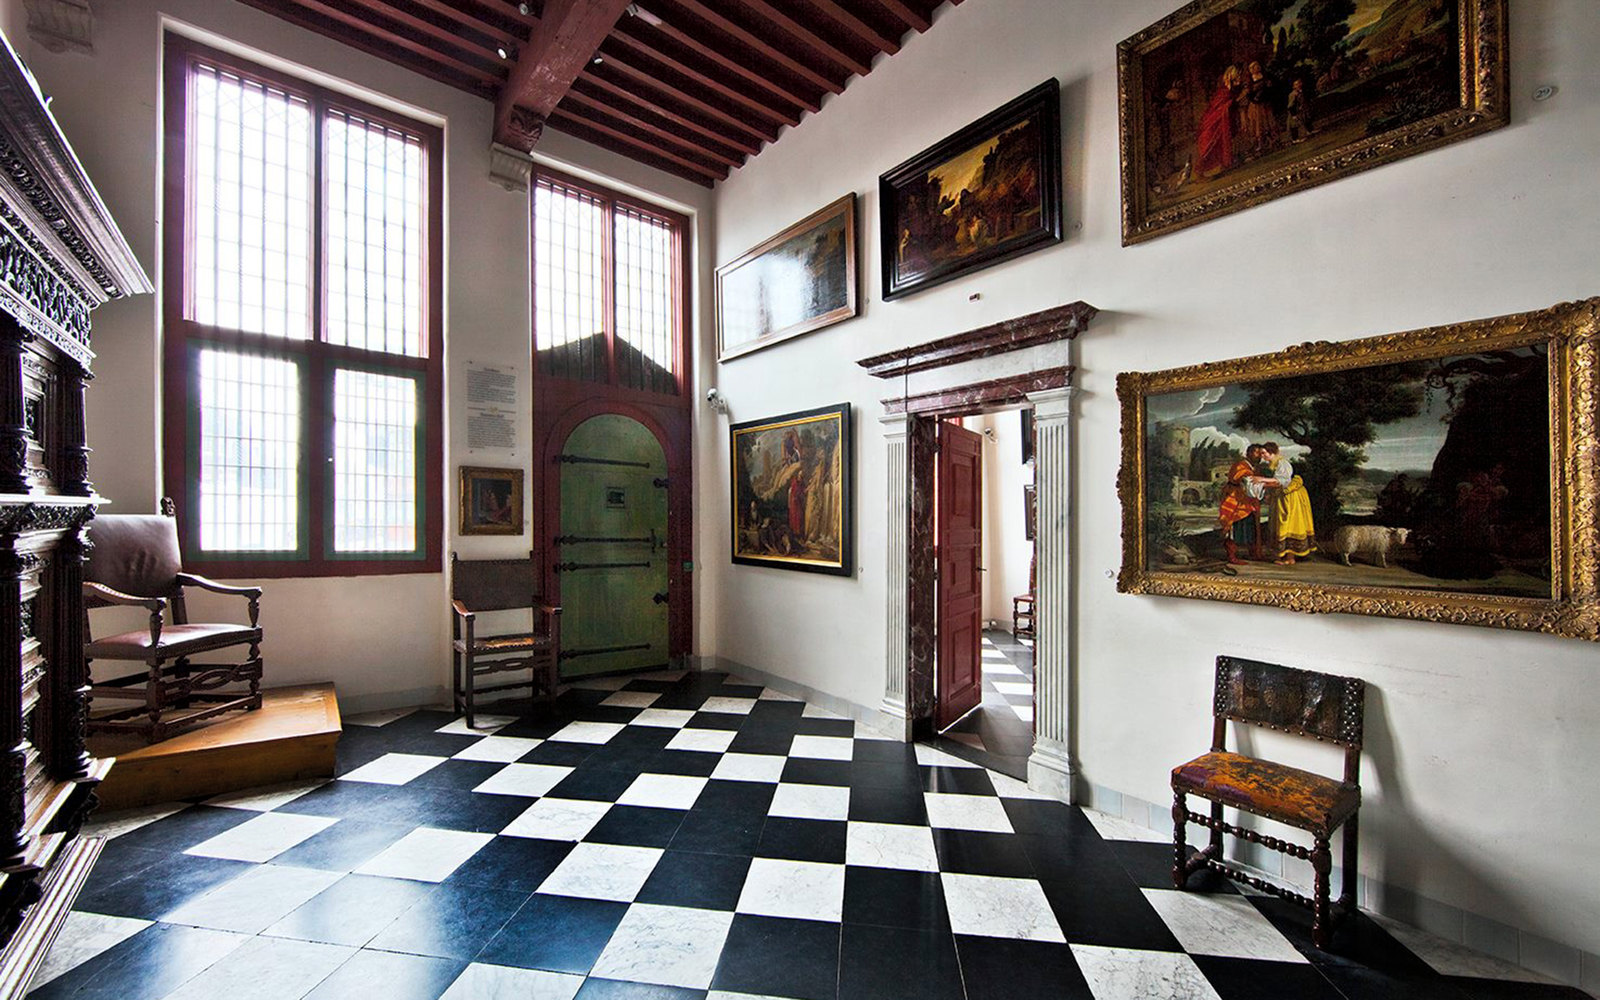 rembrandt house museum amsterdam am1015 - beach house rentals for weddings